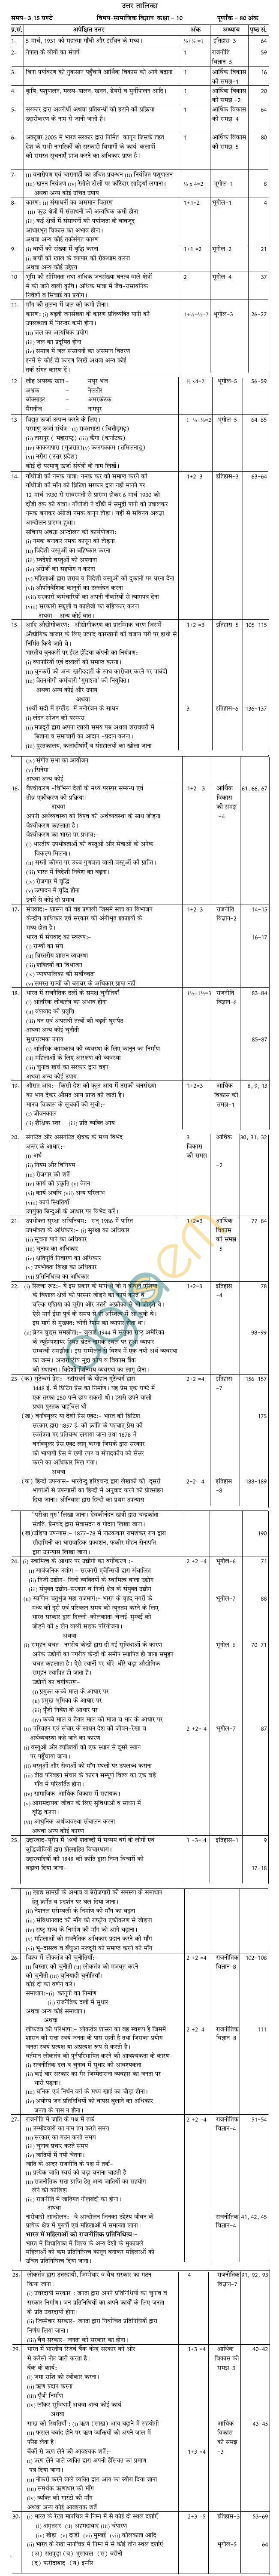 Rajasthan Board Class 10 Social Studies Model Question Paper